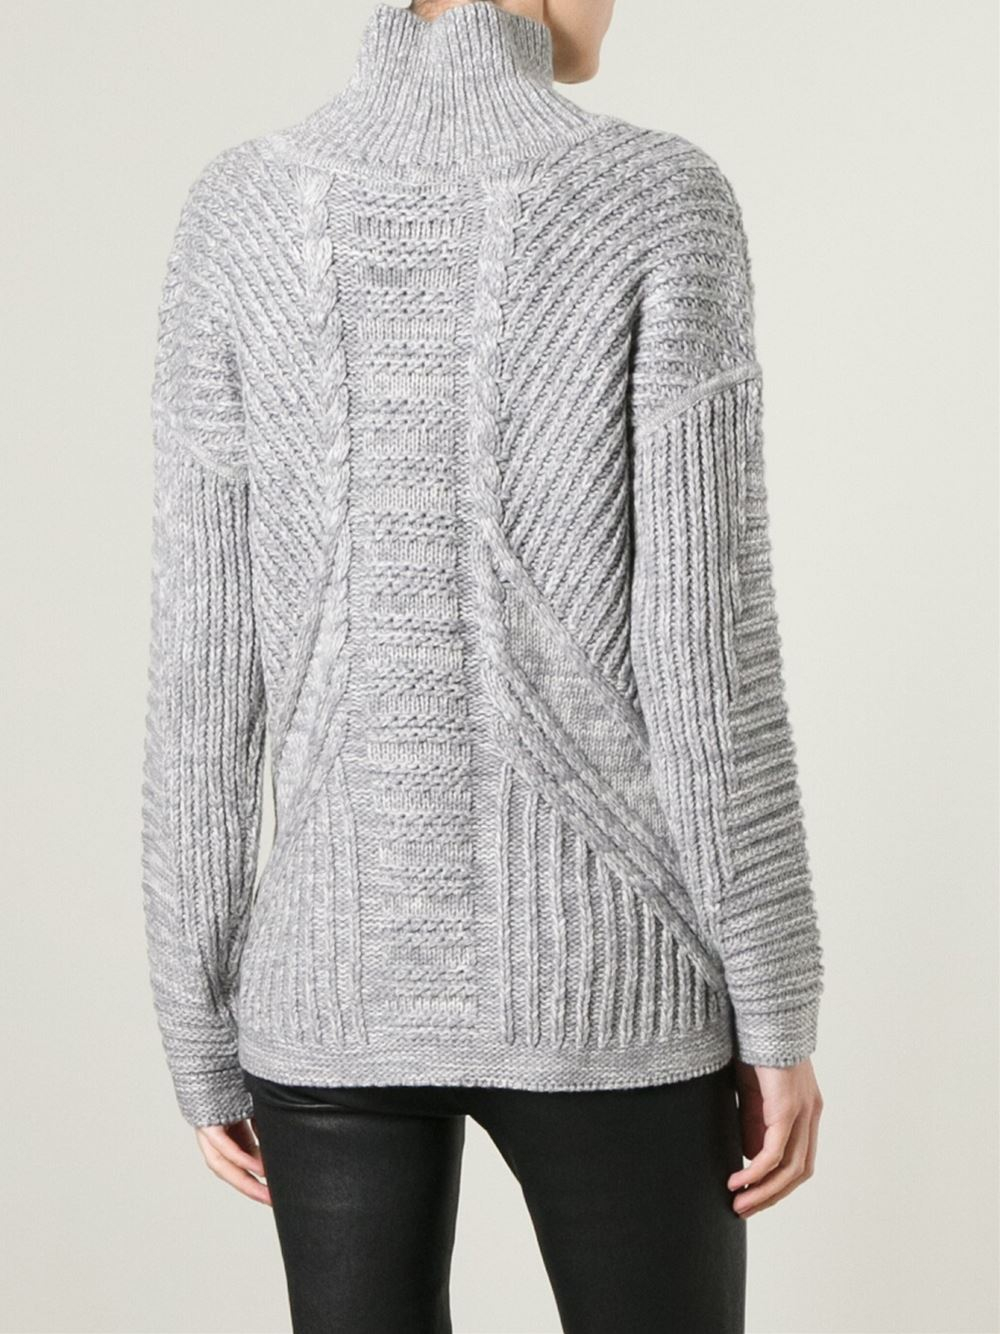 KNITWEAR - Jumpers Duffy Sale Supply Really Buy Cheap Find Great 9LIYQ